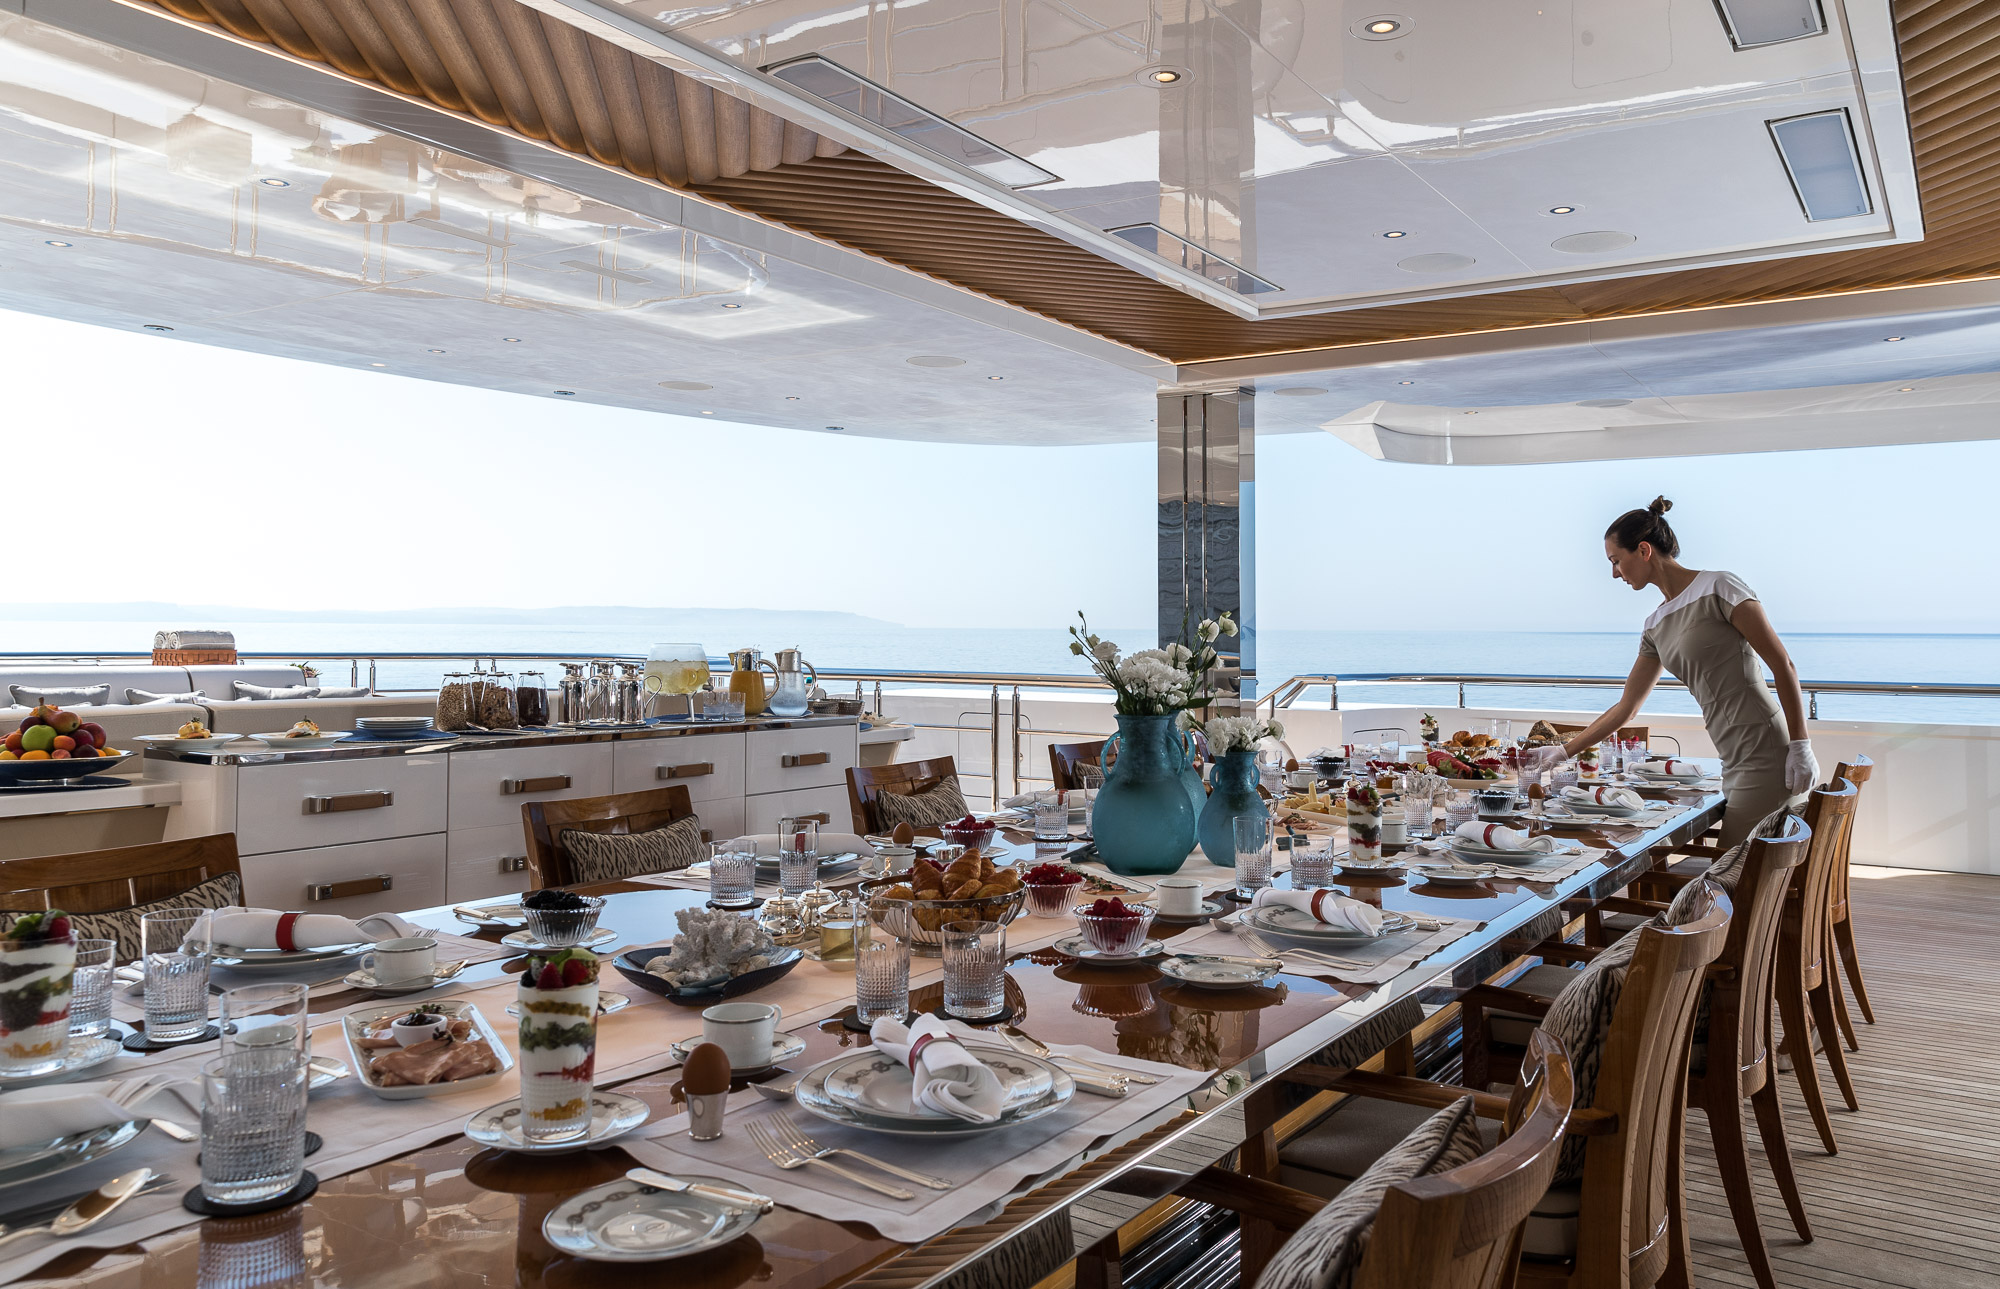 Impeccable service aboard charter yacht LANA in the Mediterranean - @ Imperial/JEFF BROWN